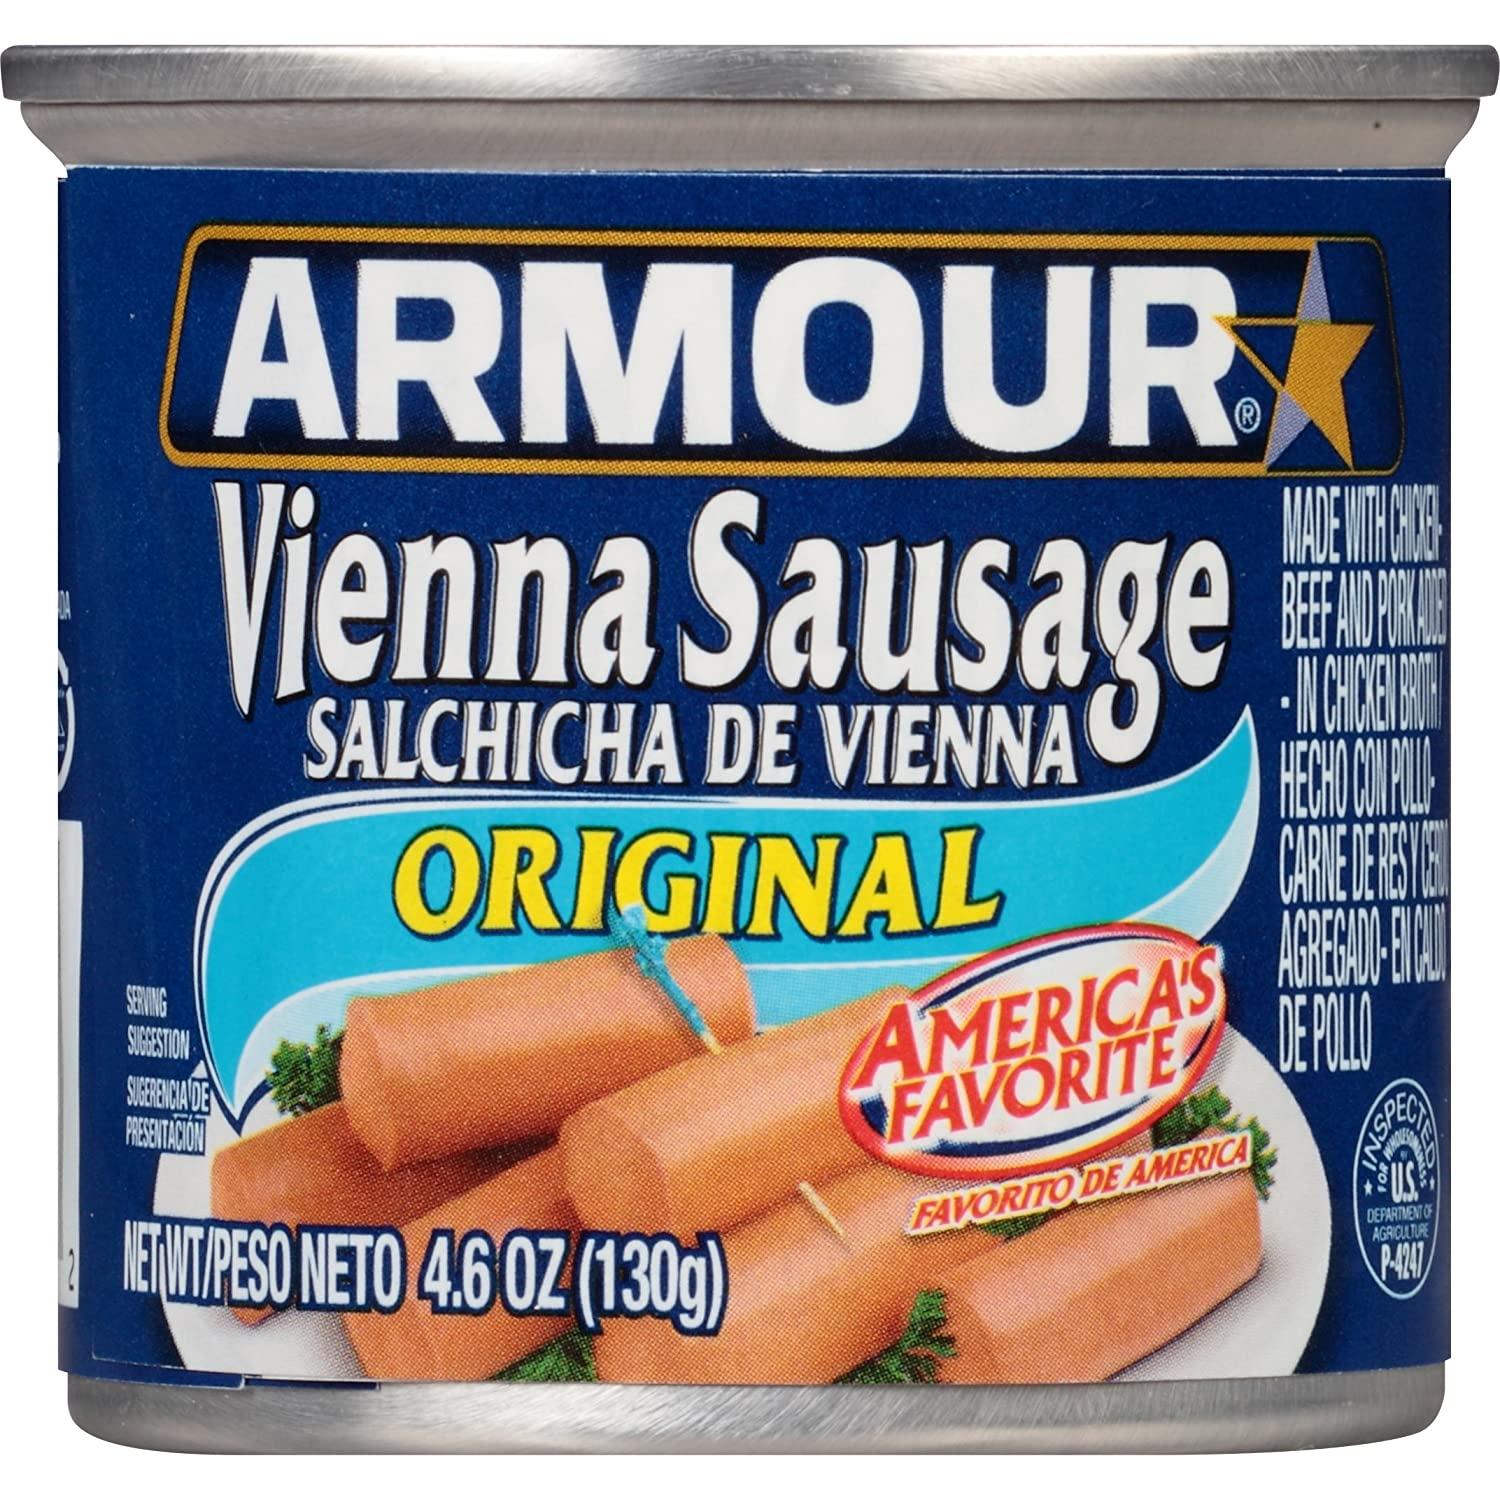 Armour Star Vienna Sausage, Original Flavor, Canned Sausage, 4.6 OZ